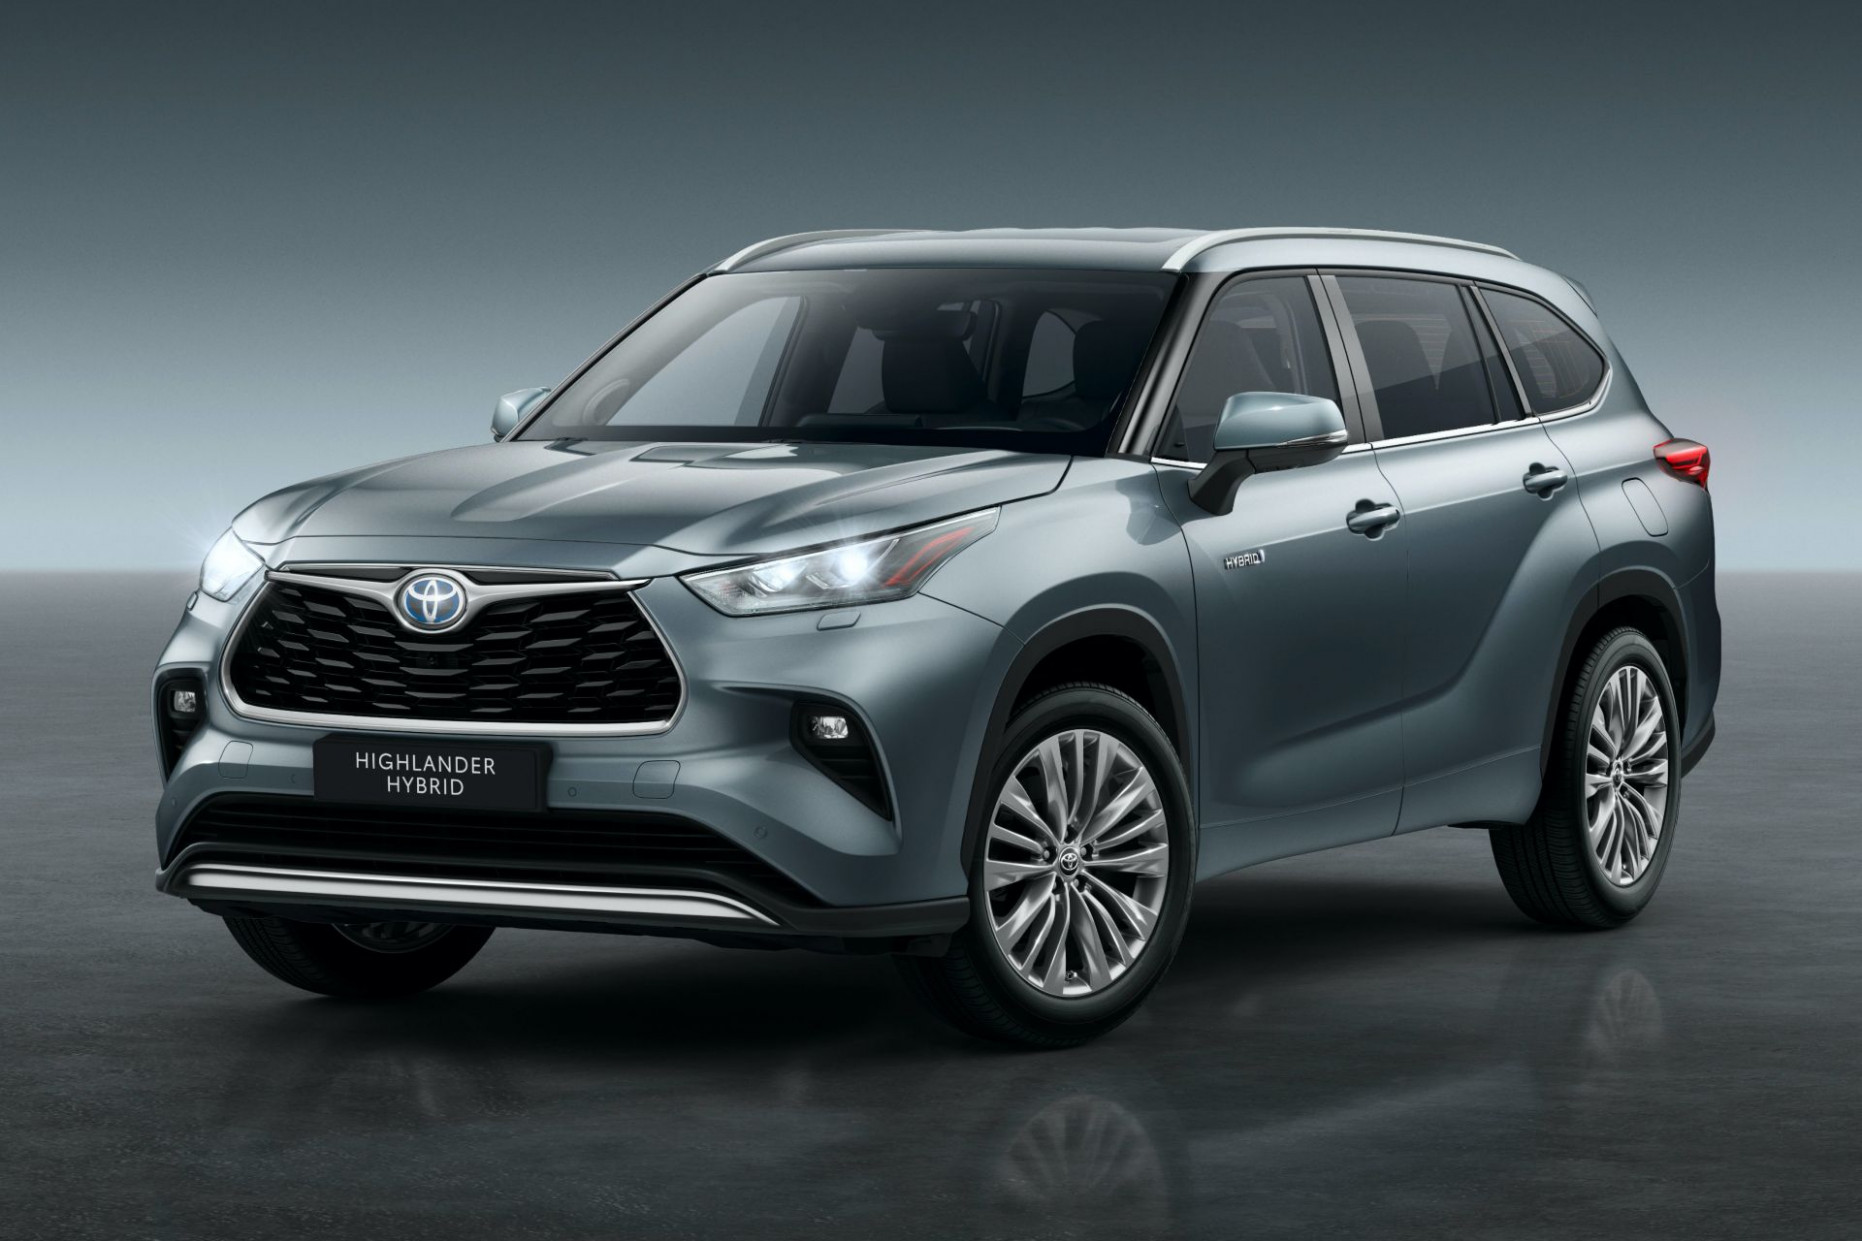 Picture When Will 2022 Toyota Highlander Be Available